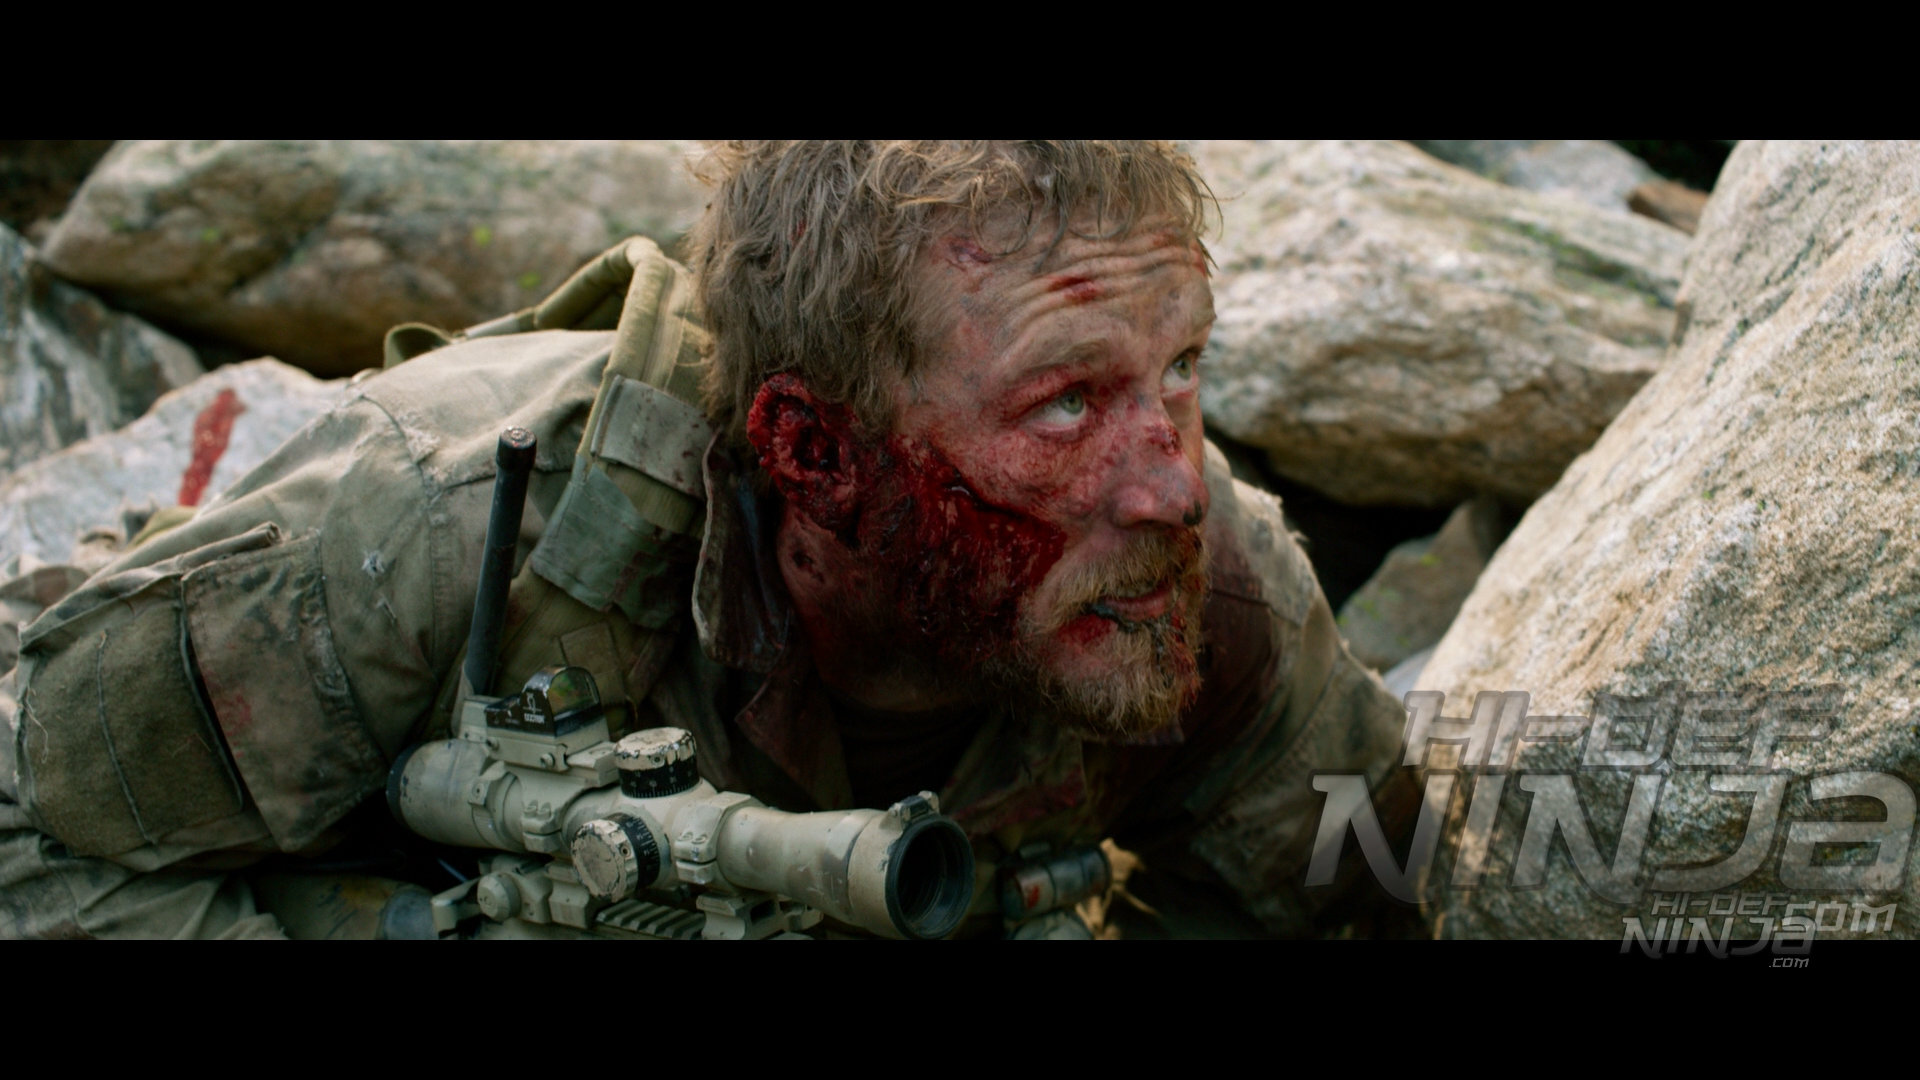 LoneSurvivor-7